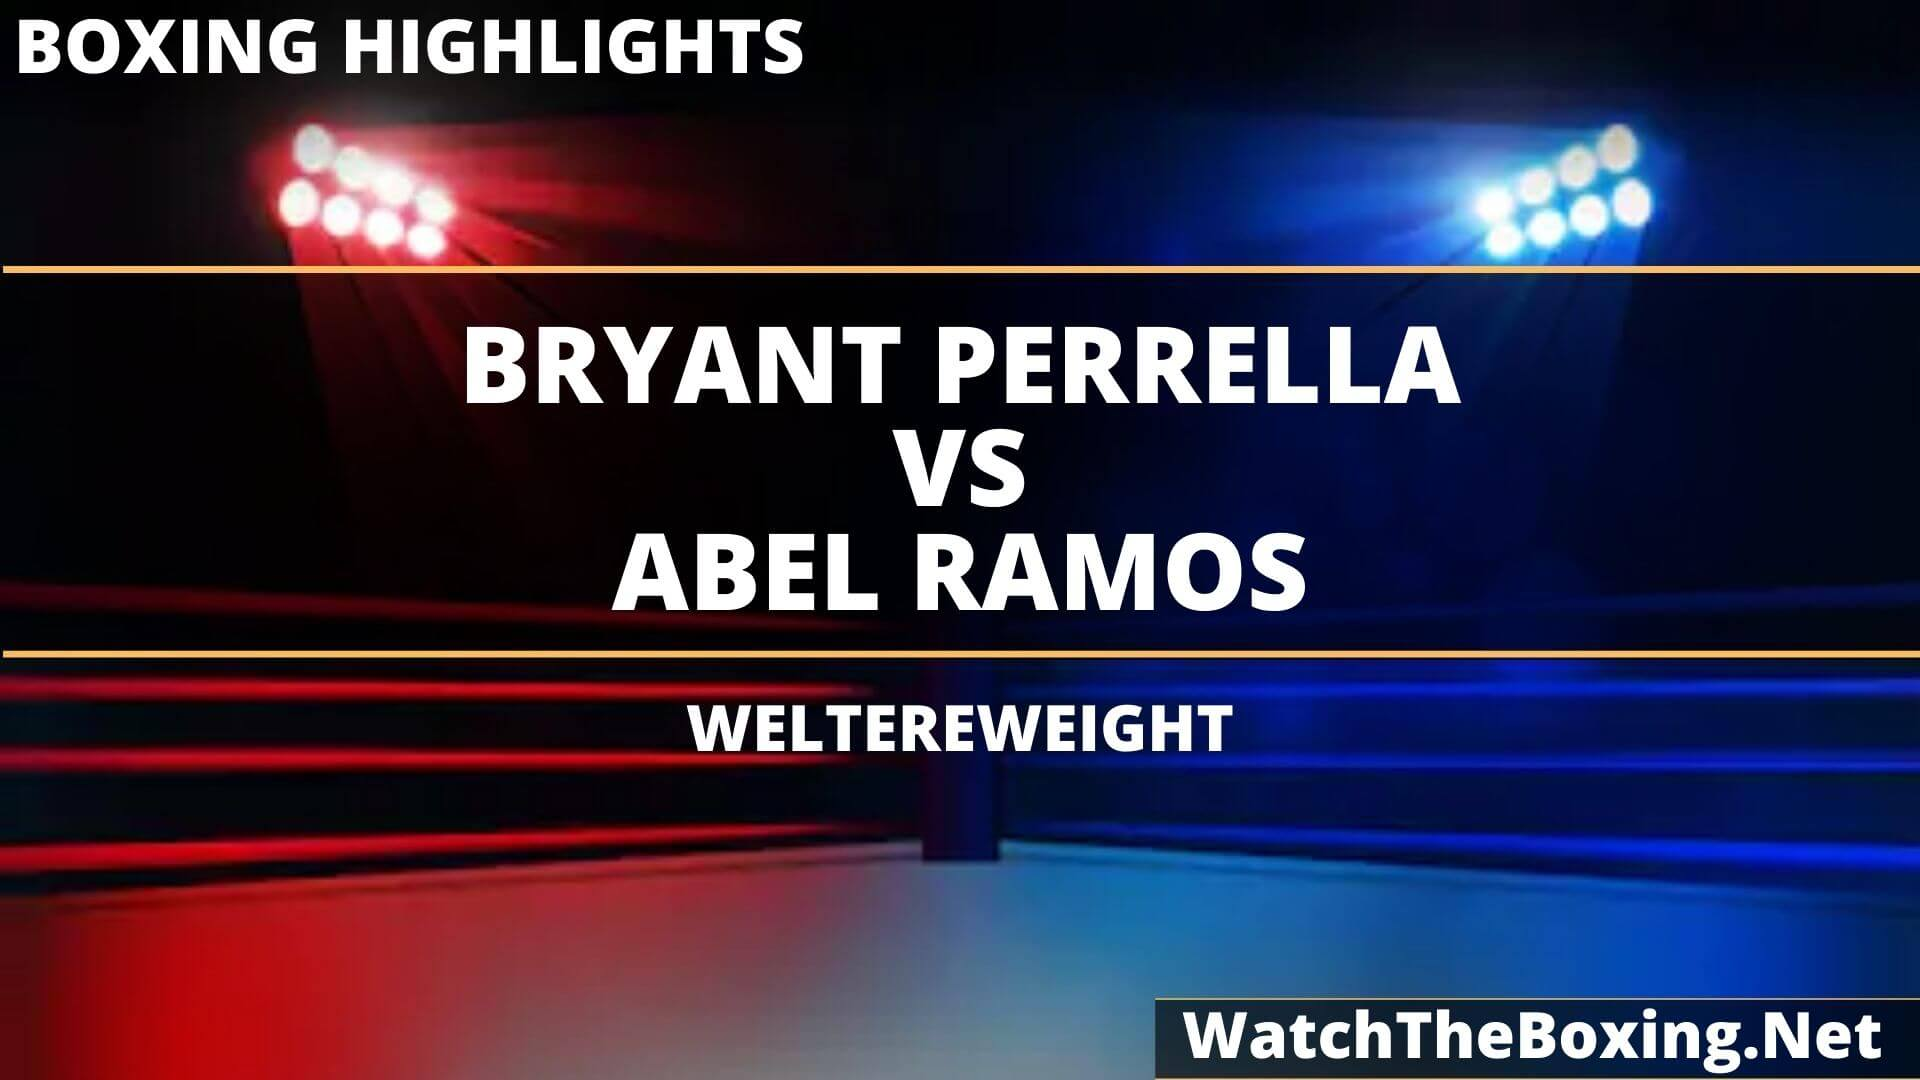 Bryant Perrella Vs Abel Ramos Highlights 2020